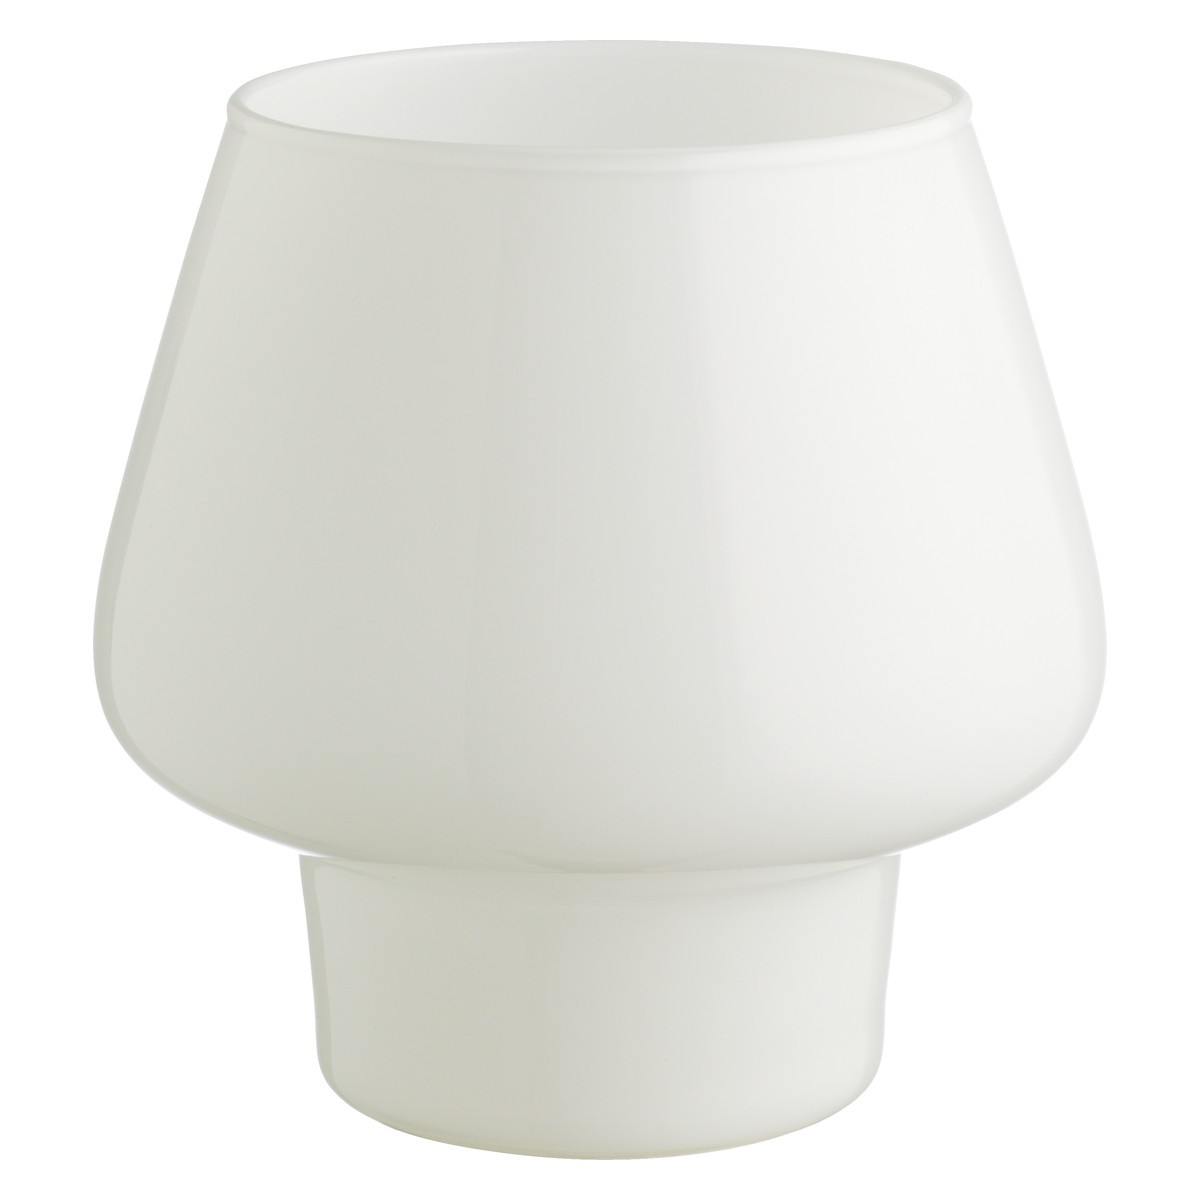 White glass lamp 10 options for table lamps warisan lighting white glass lamp 10 options for table lamps geotapseo Images